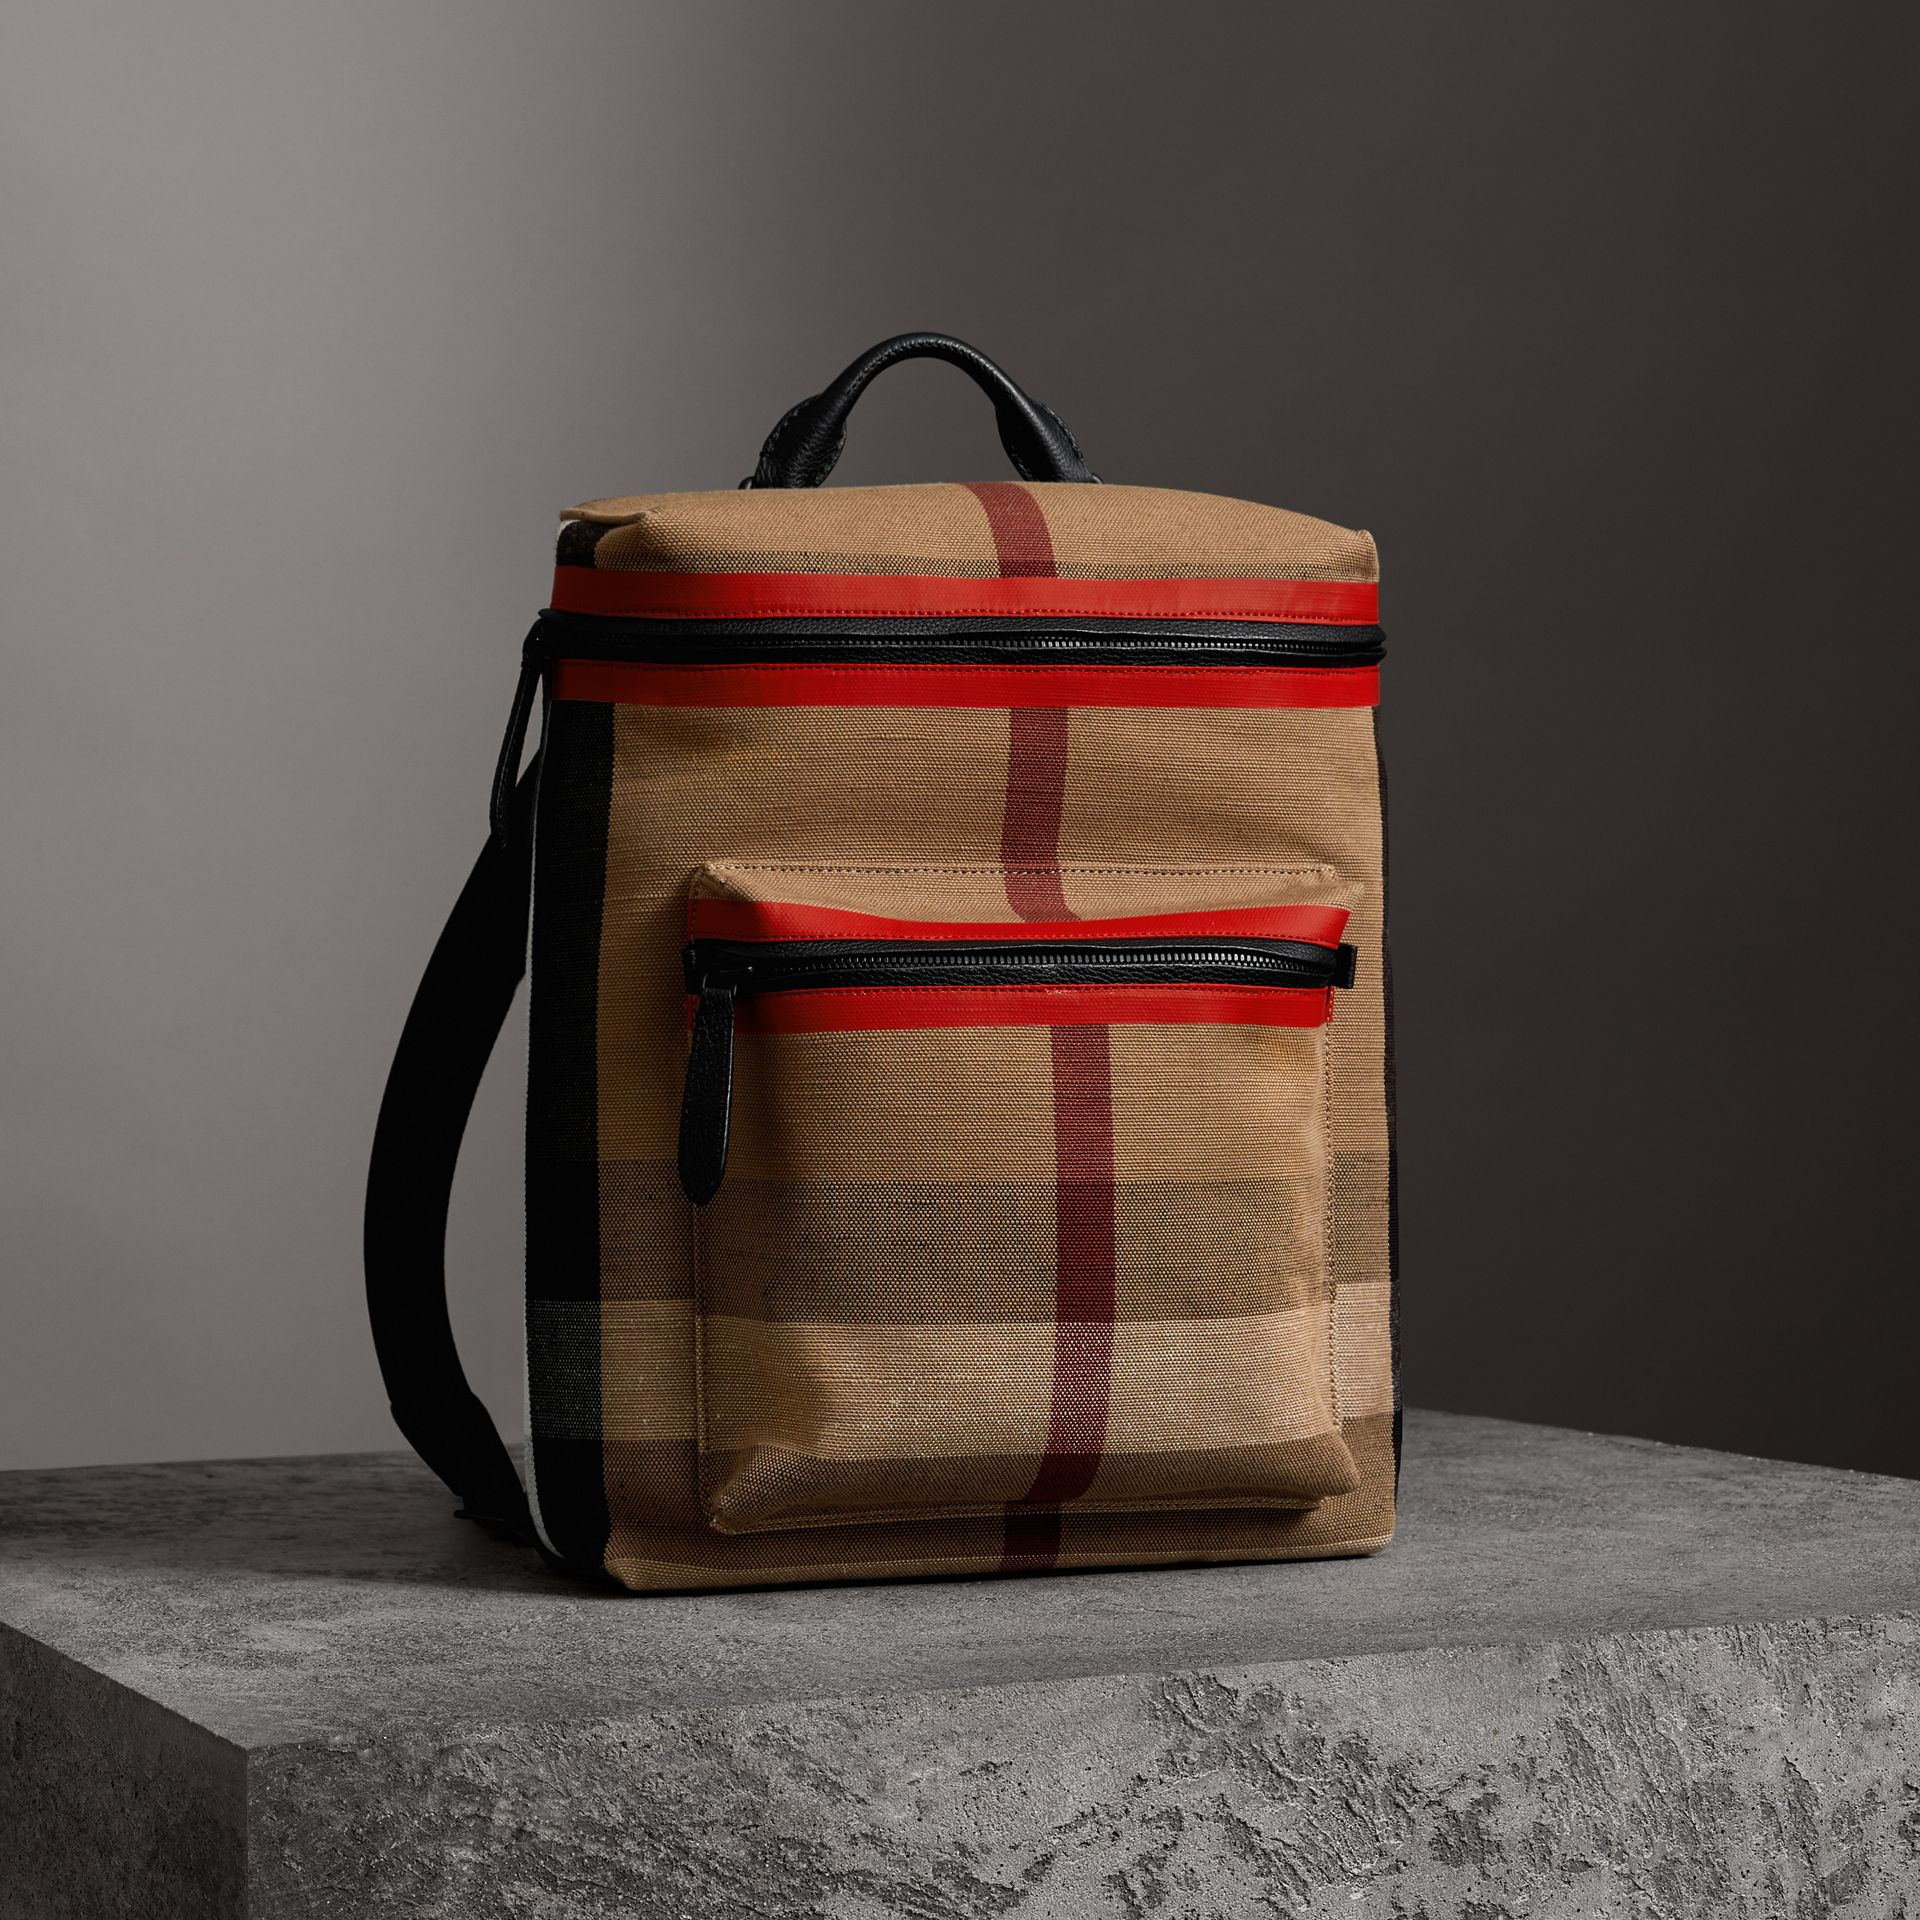 Zip-top Leather Trim Canvas Check Backpack in Military Red/camel - Men | Burberry Canada - gallery image 3